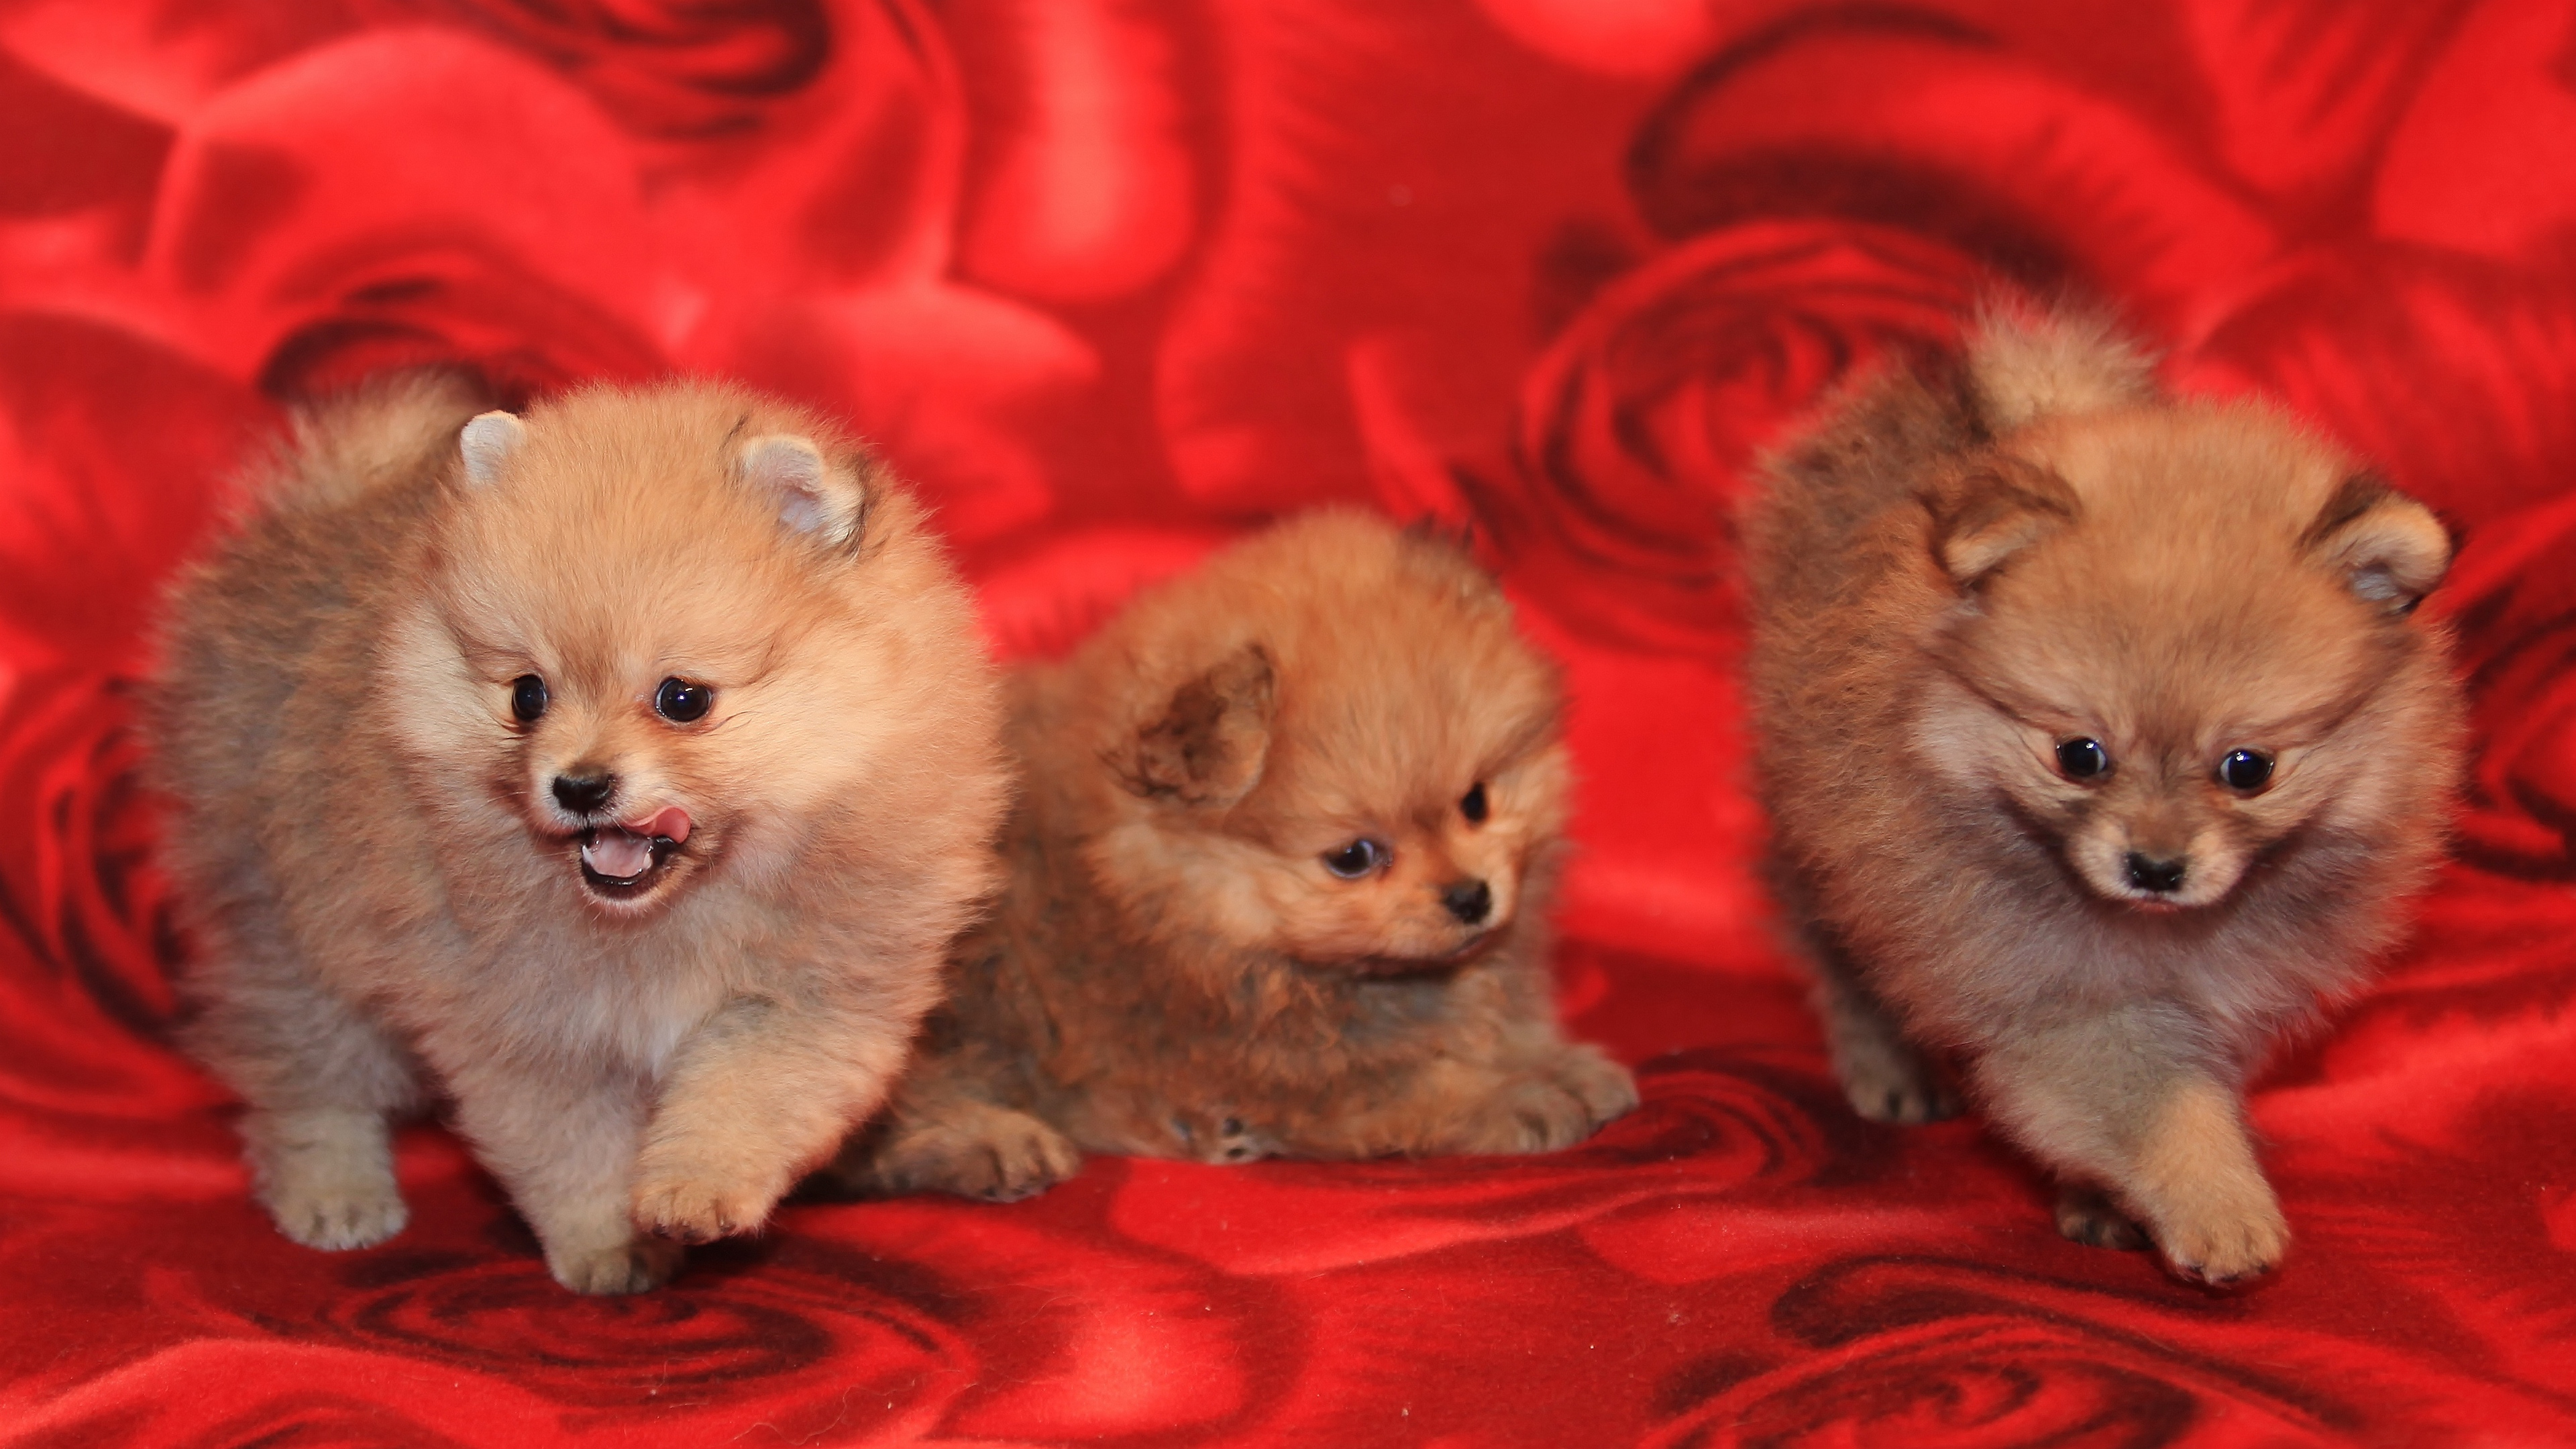 puppies dogs three playful 4k 1542241643 - puppies, dogs, three, playful 4k - Three, Puppies, Dogs